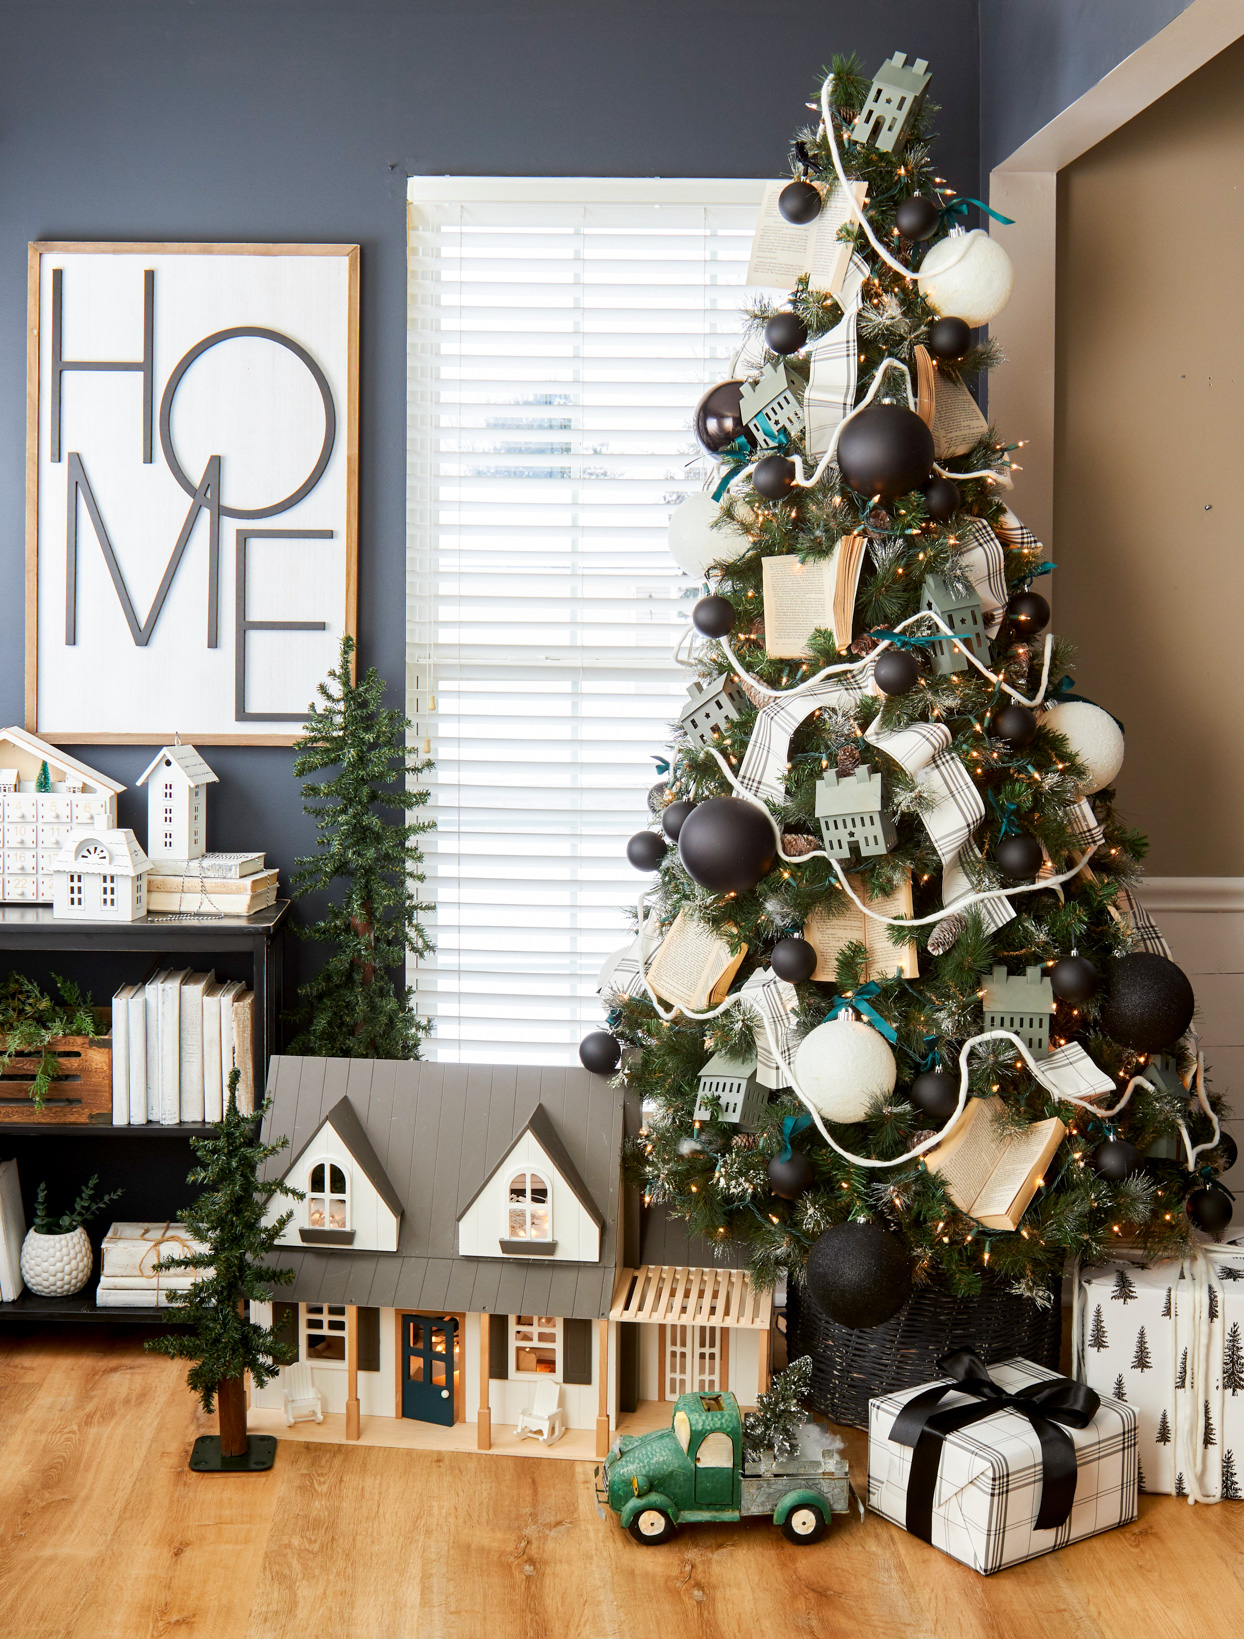 23 Farmhouse Christmas Decor Ideas To Make Your Space More Festive Better Homes Gardens